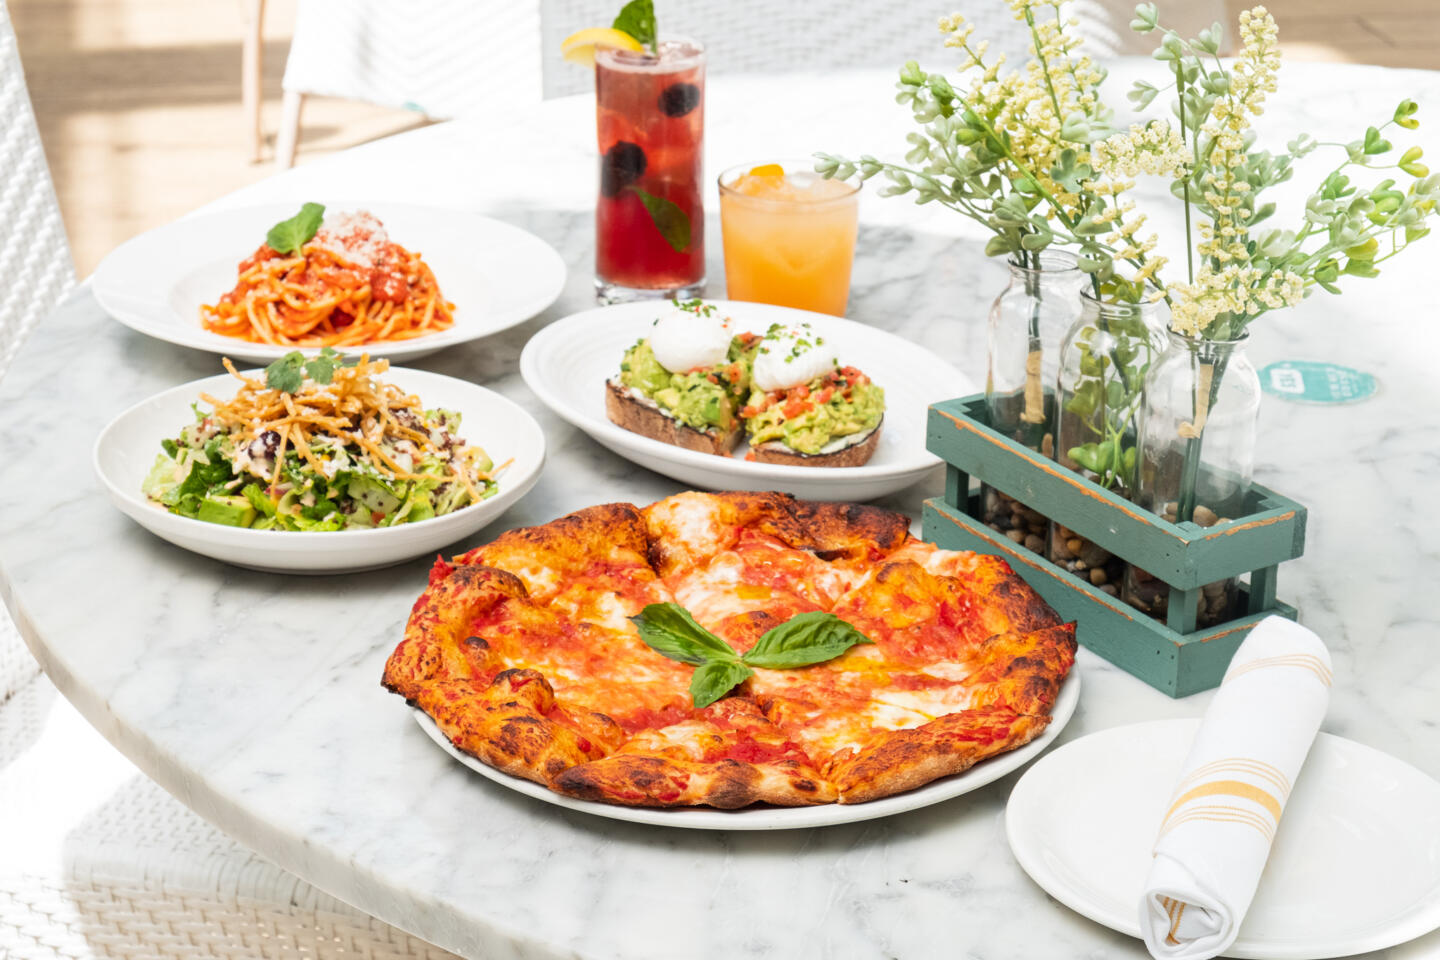 Summer House Pizza nad brunch dishes